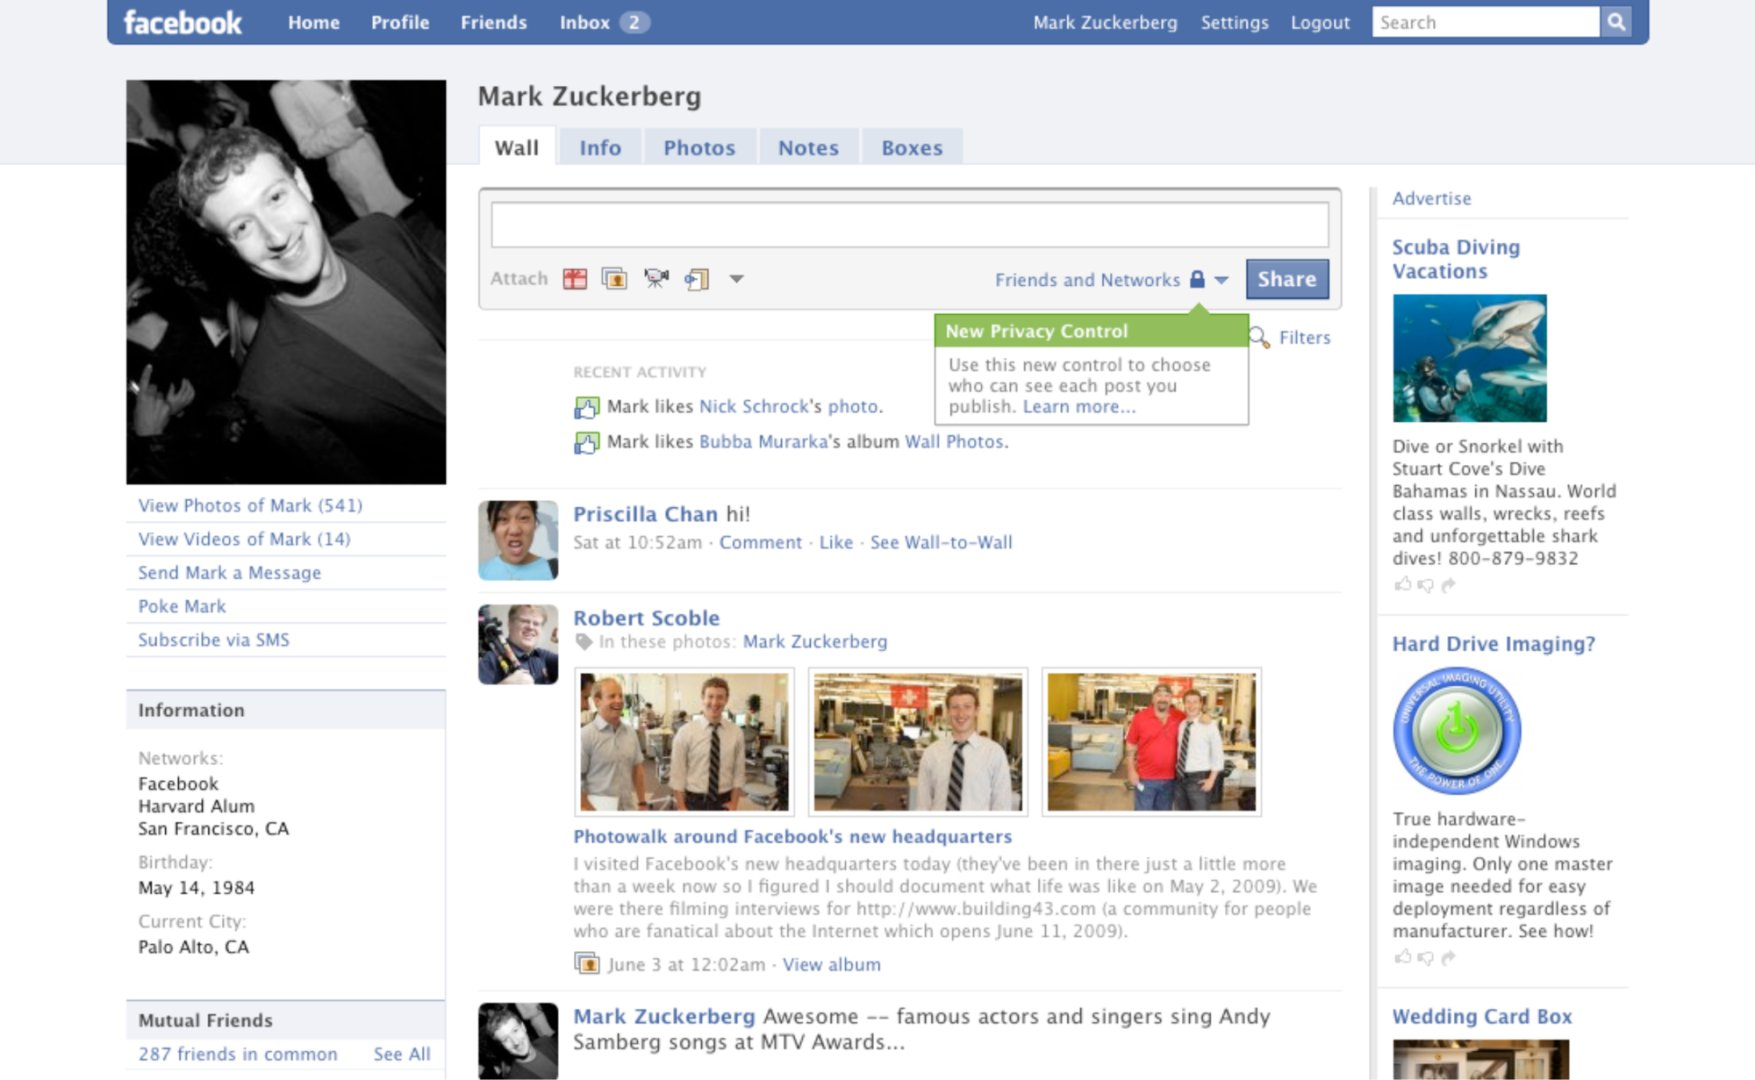 Facebook profile page (2009)